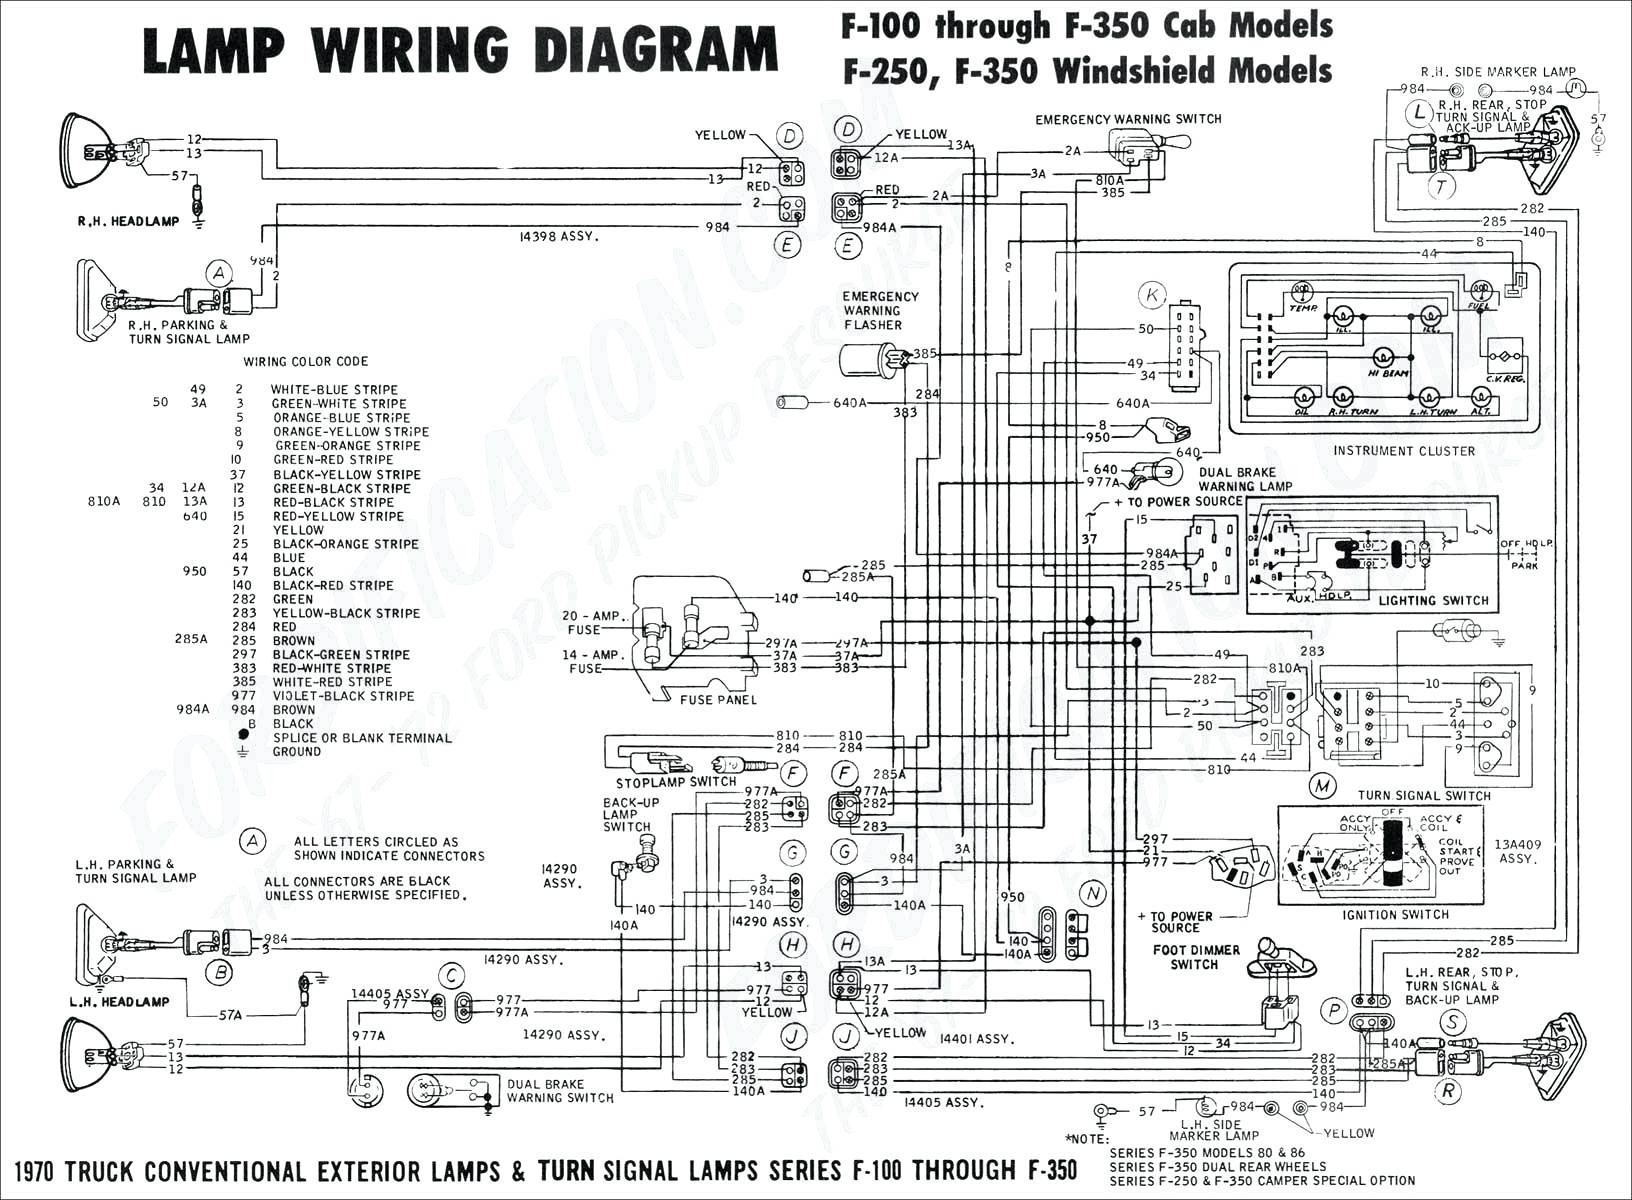 2000 Vw Beetle Engine Diagram Furthermore 2000 Vw Beetle Cooling System Diagram Also 2000 Vw Jetta Of 2000 Vw Beetle Engine Diagram